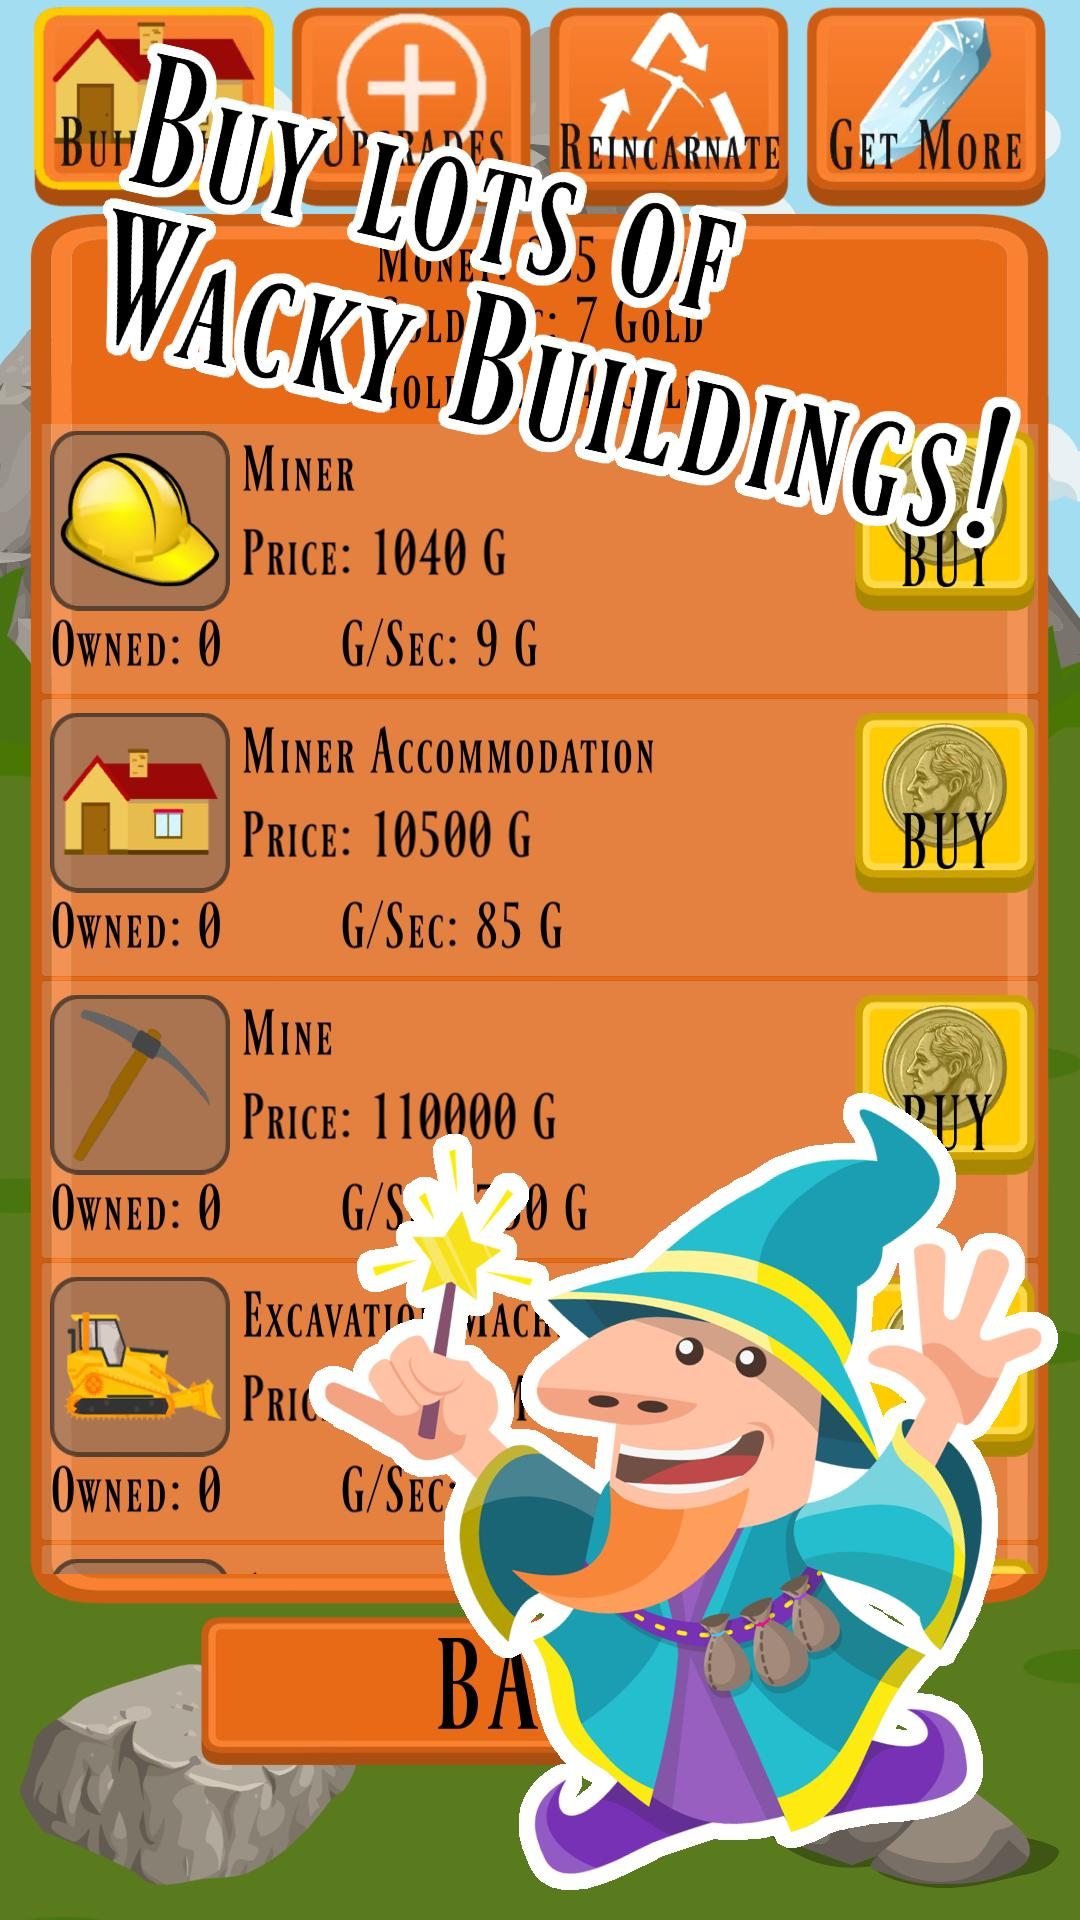 Idle Miner Clicker Tycoon for Android - APK Download